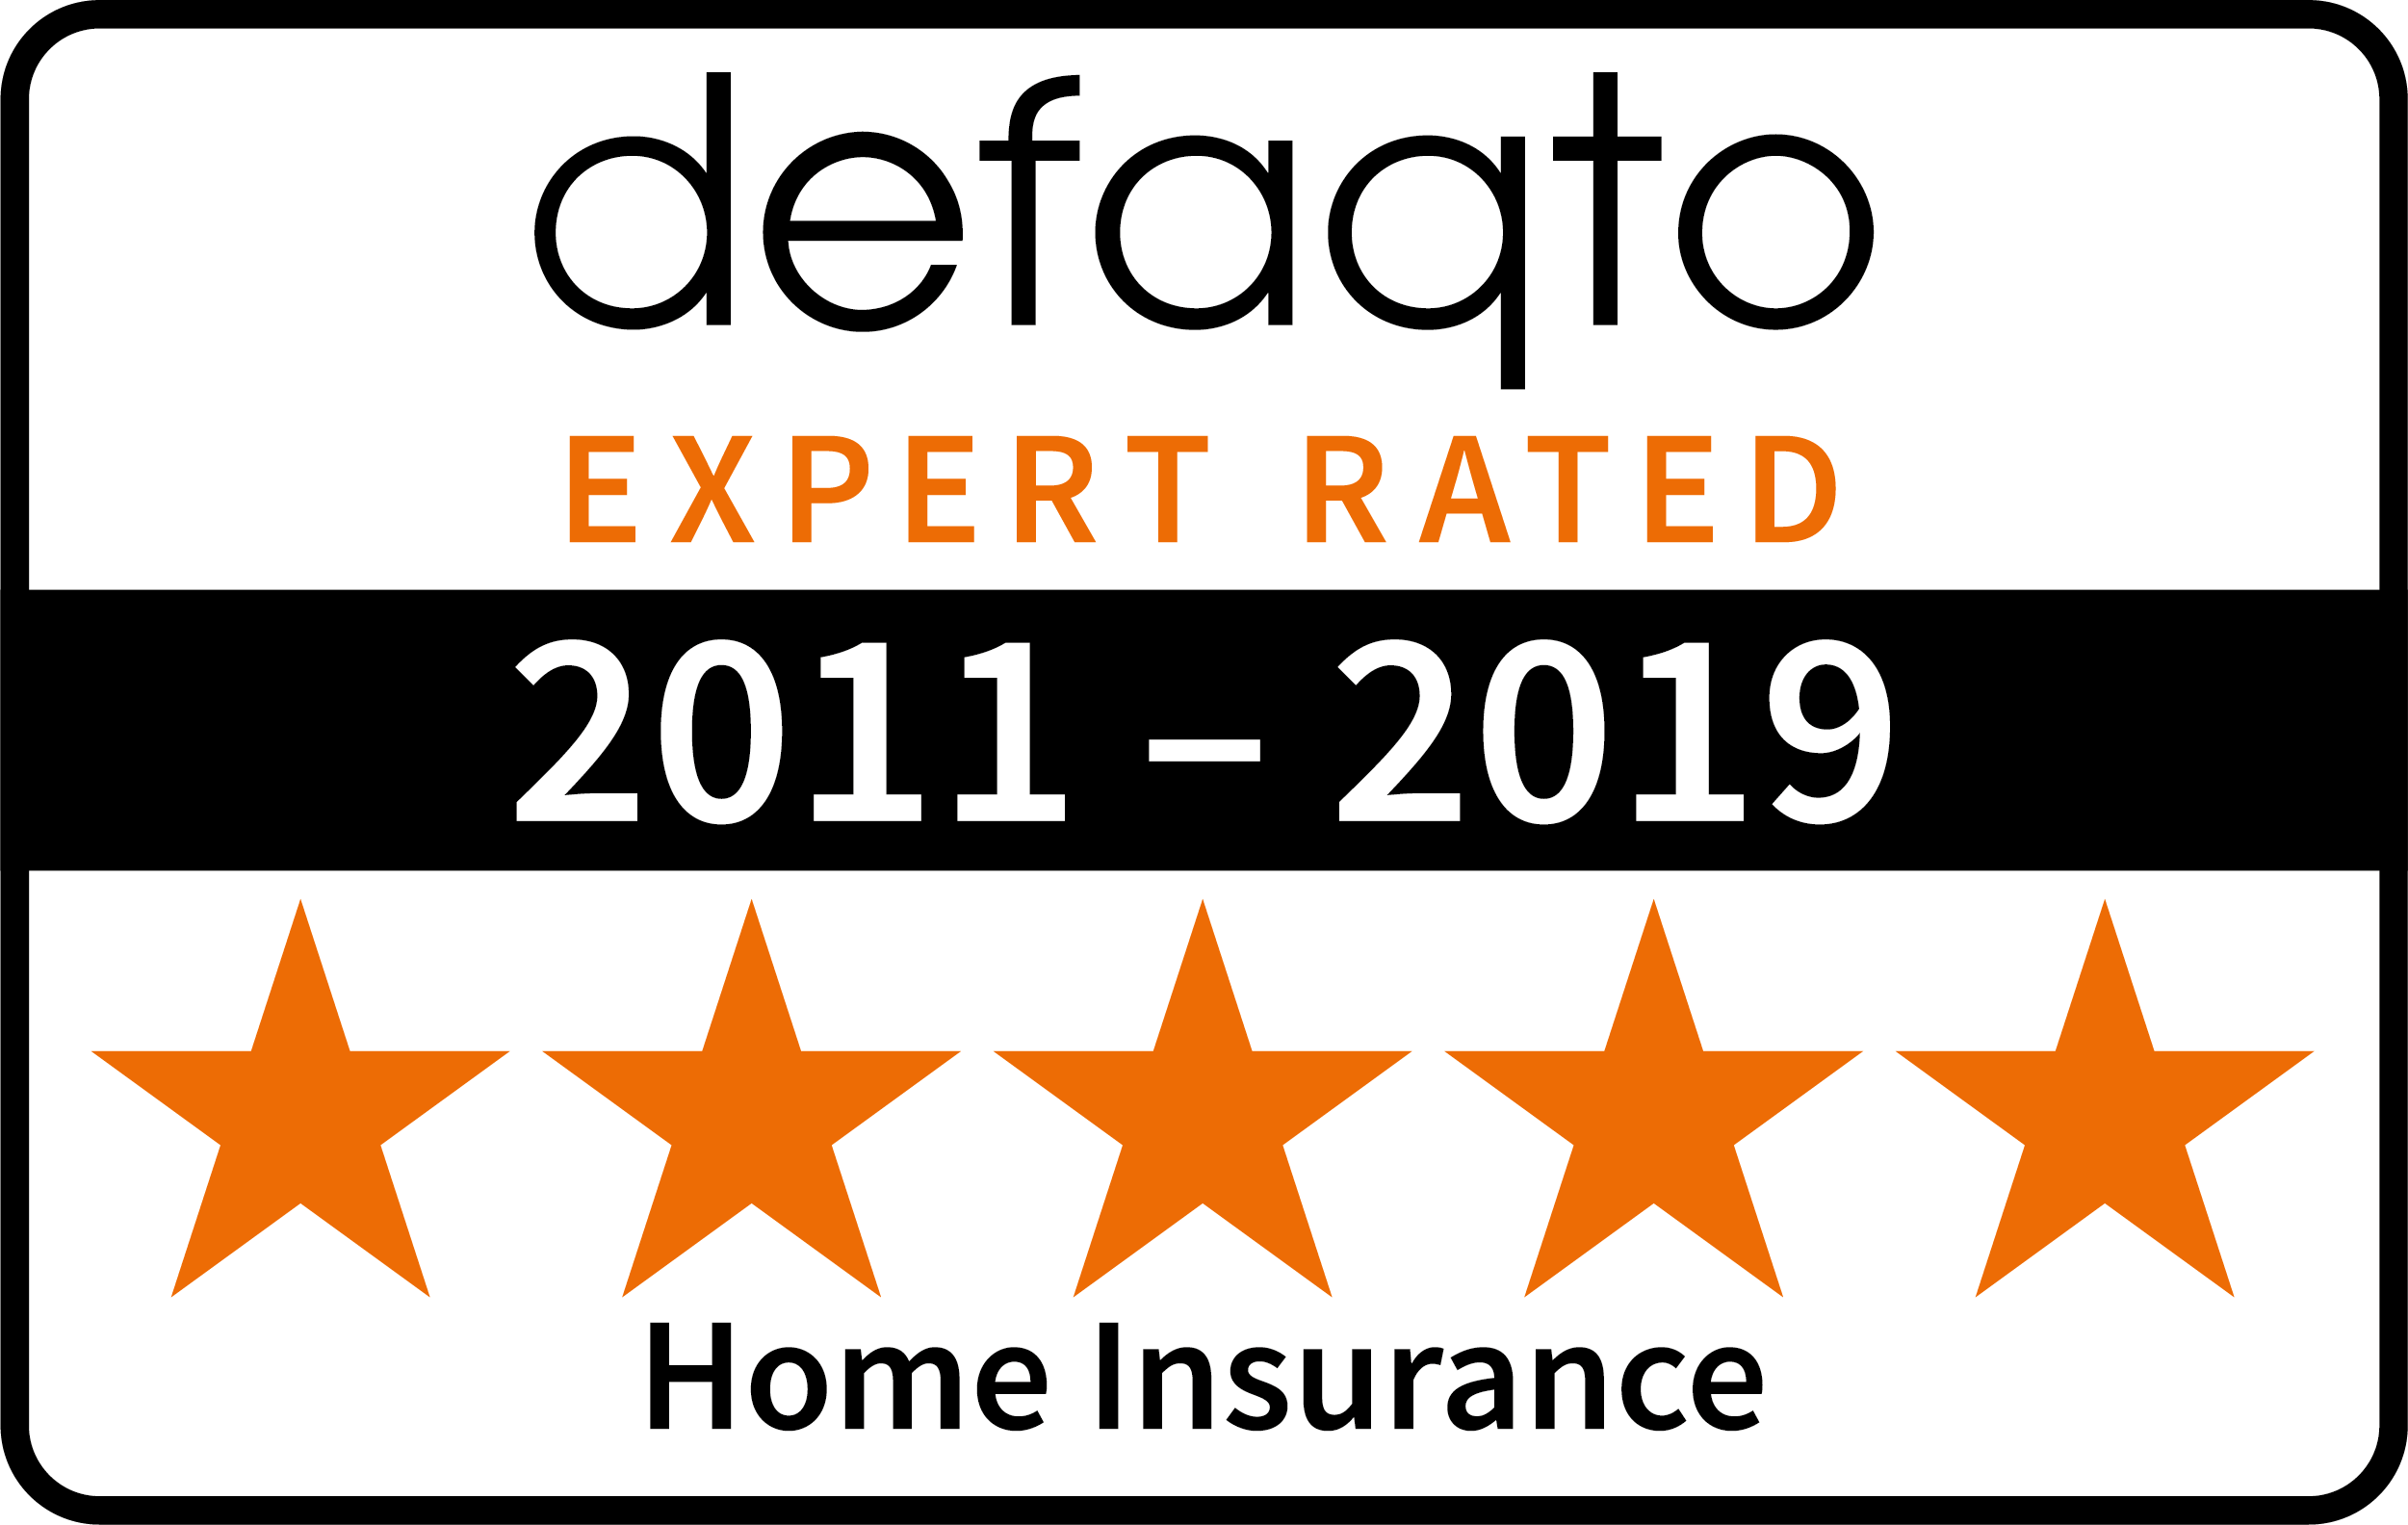 defaqto home insurance 2011-2019